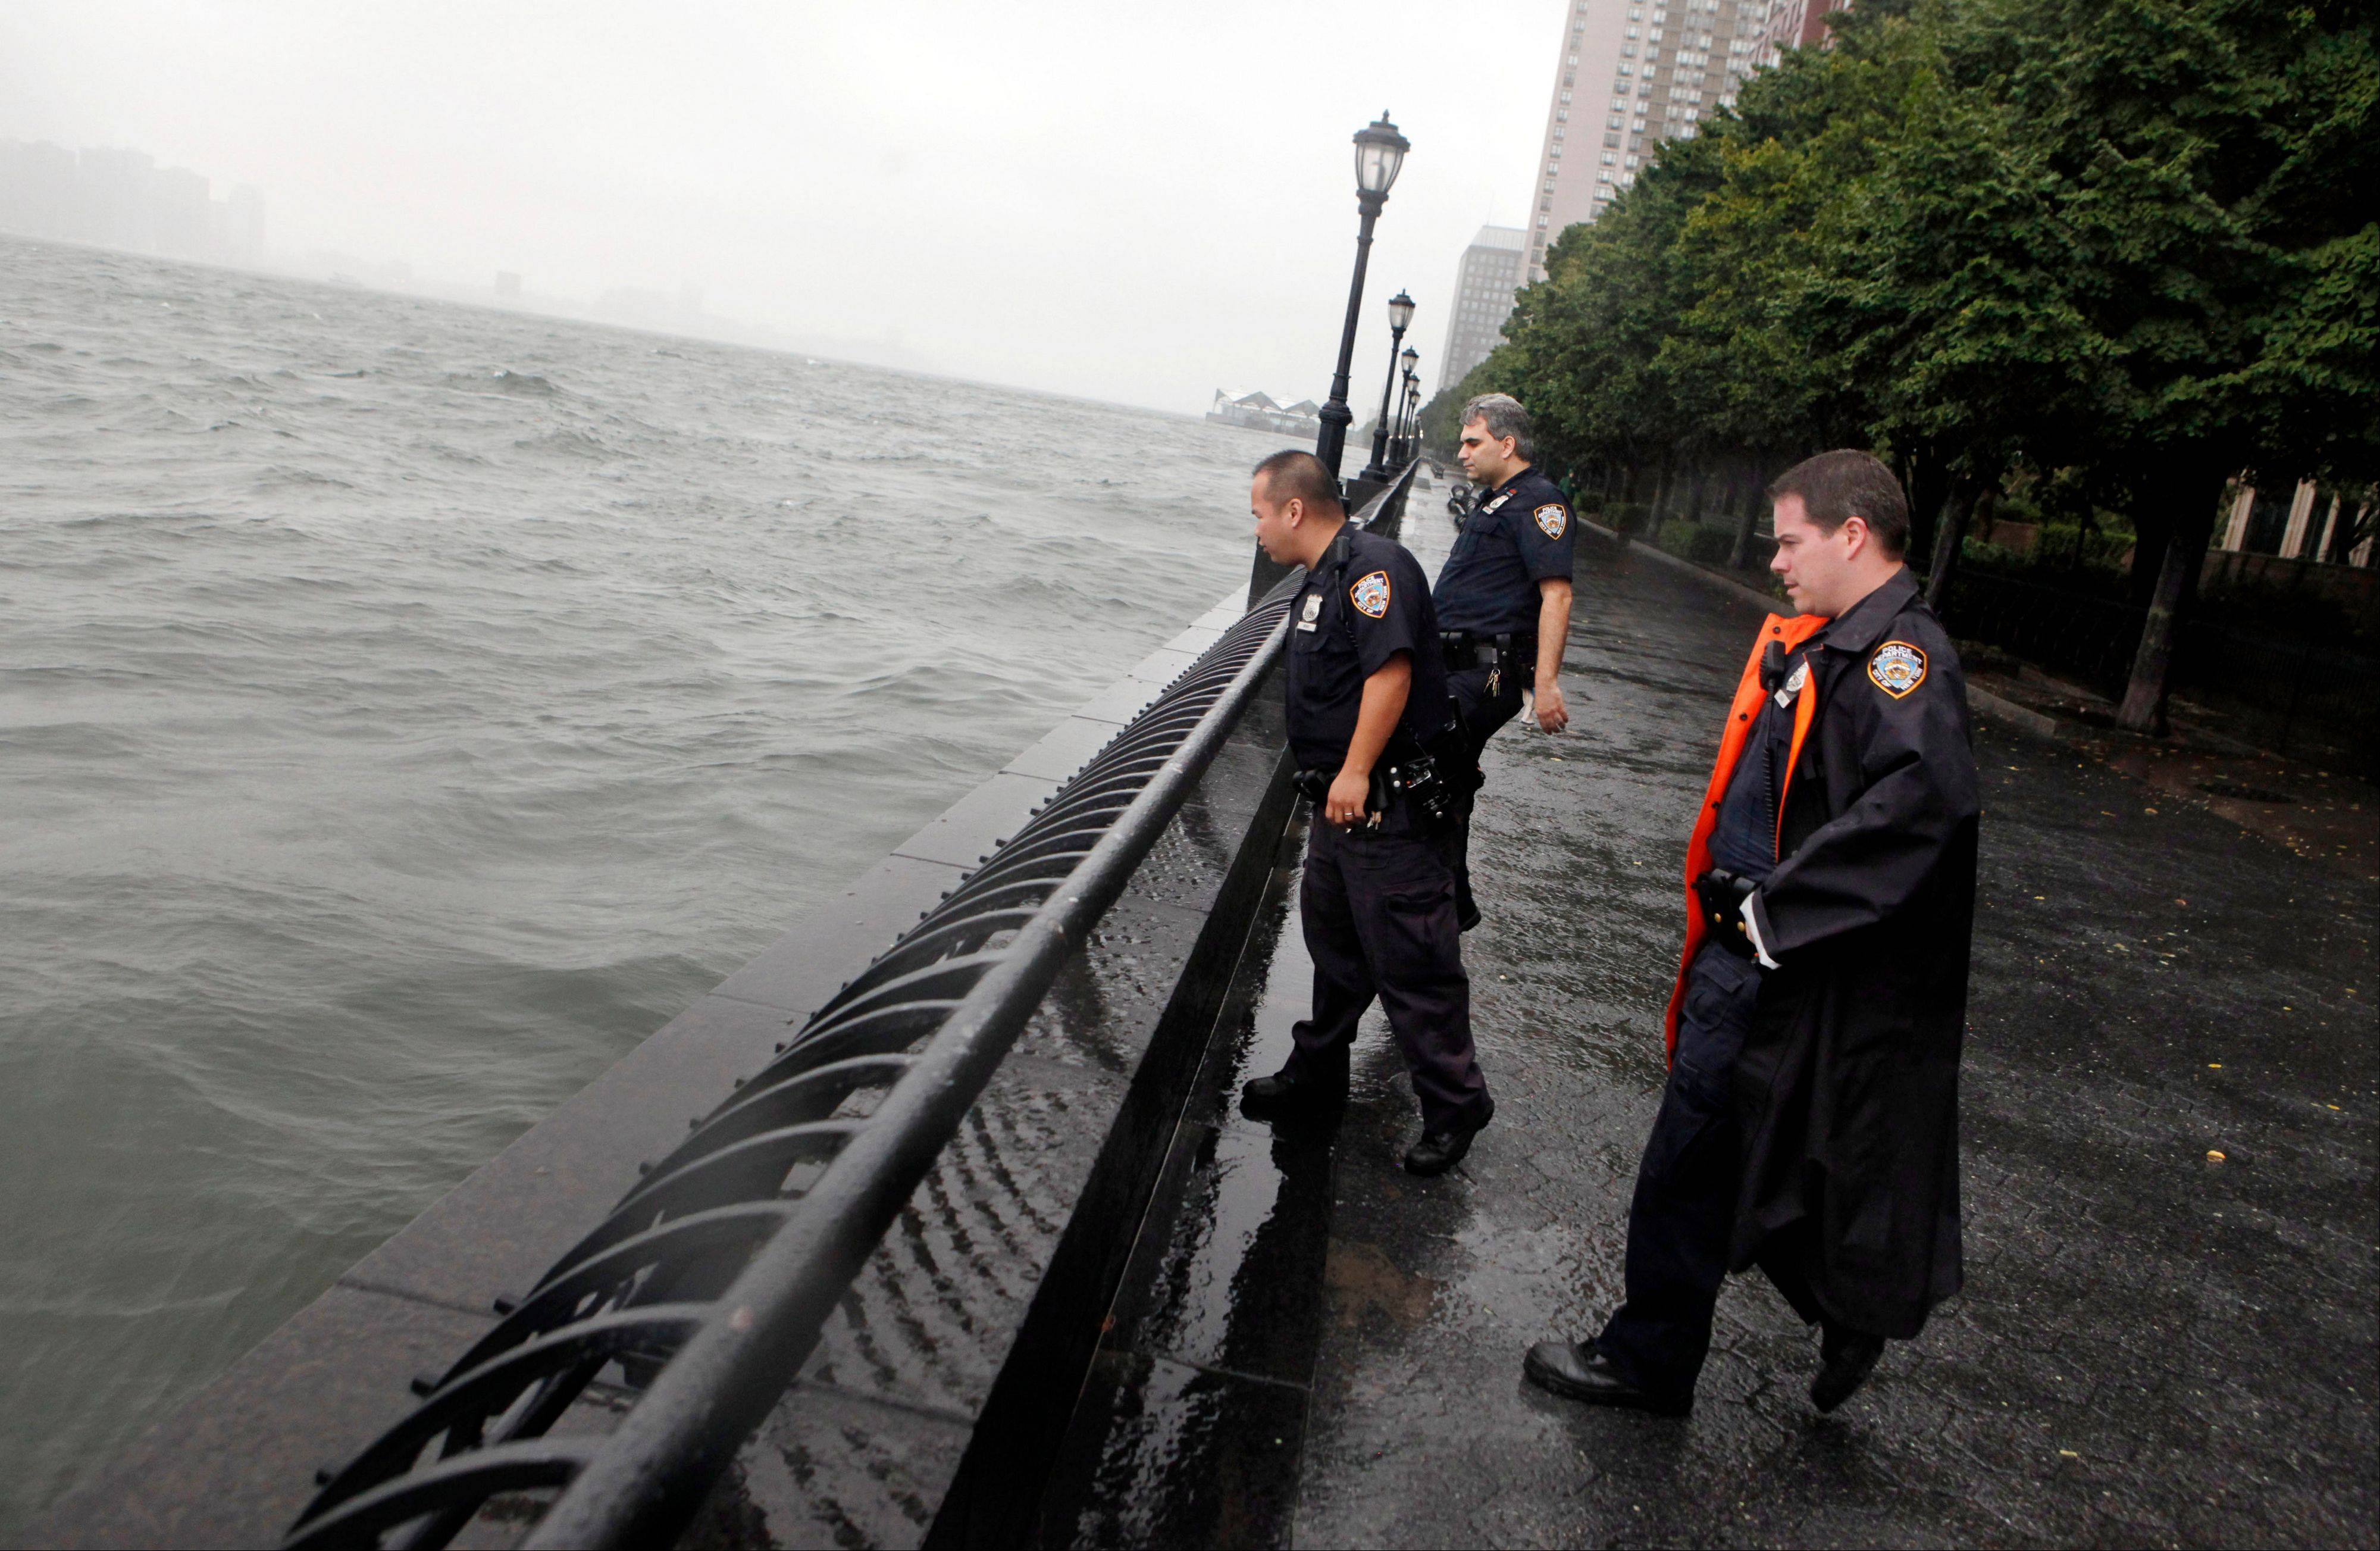 Police officers inspect the water level along the Battery Park City seawall as Tropical Storm Irene passes through New York, Sunday, Aug. 28, 2011. Battery Park City and other areas in Lower Manhattan have been evacuated in advance of the storm.